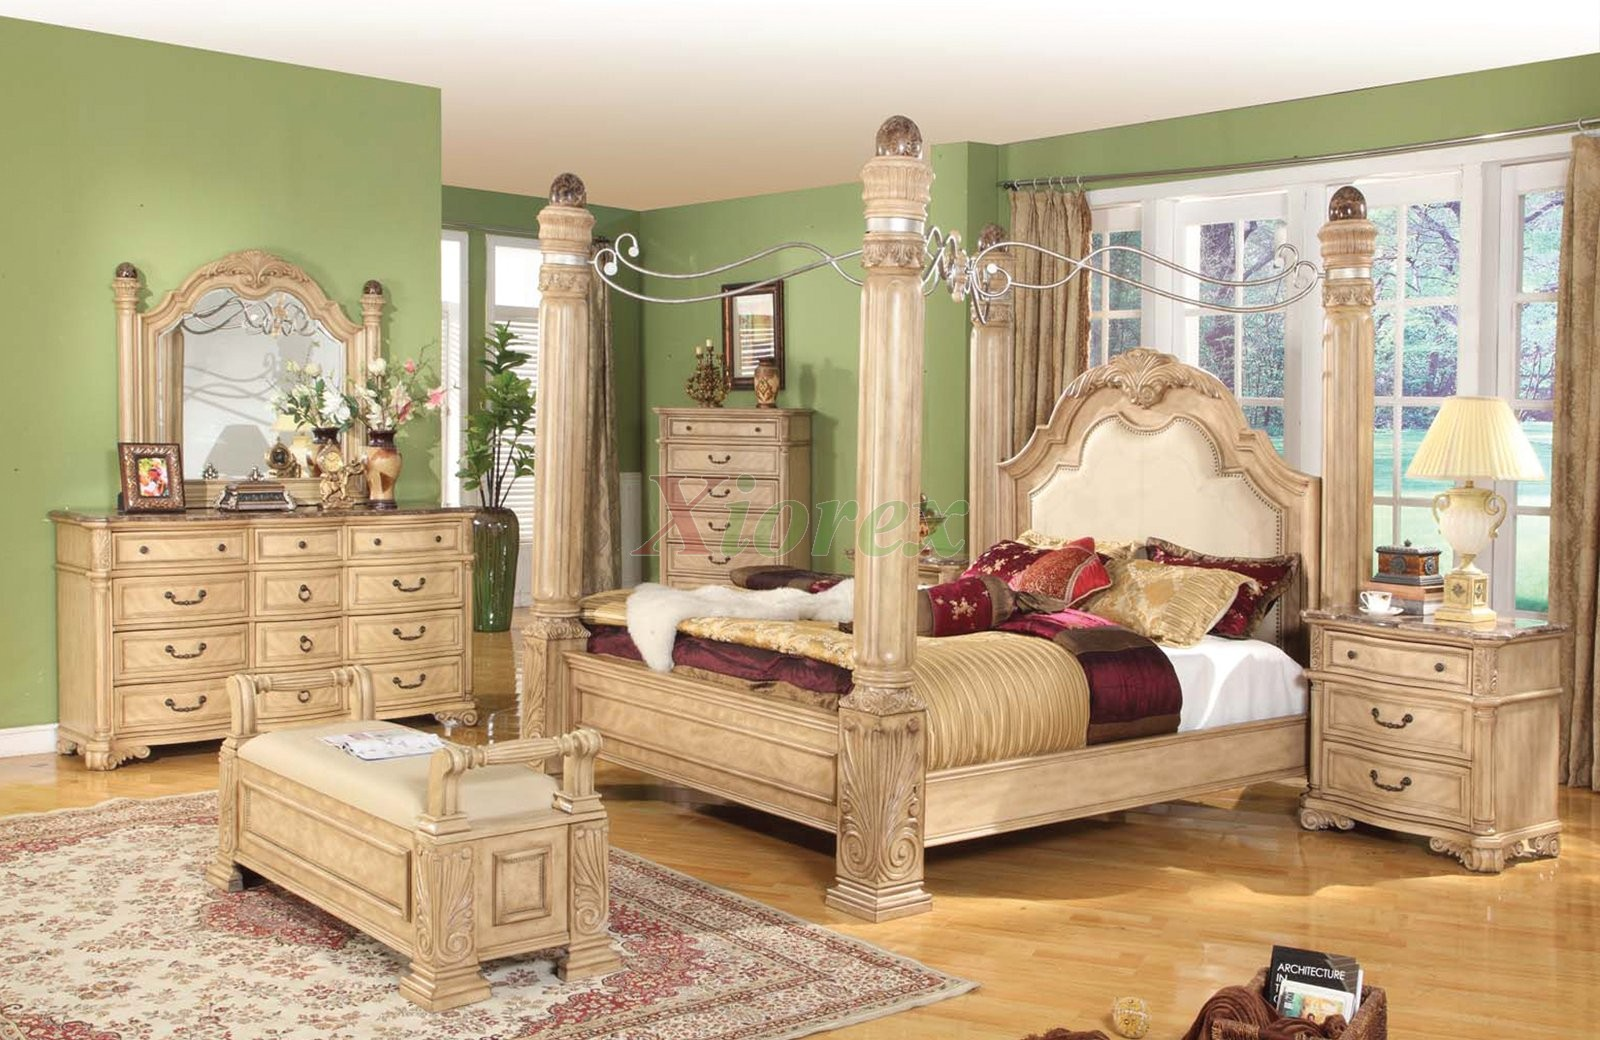 King Canopy Bedroom Sets canopy bed sets bedroom furniture sets w poster canopy beds 100